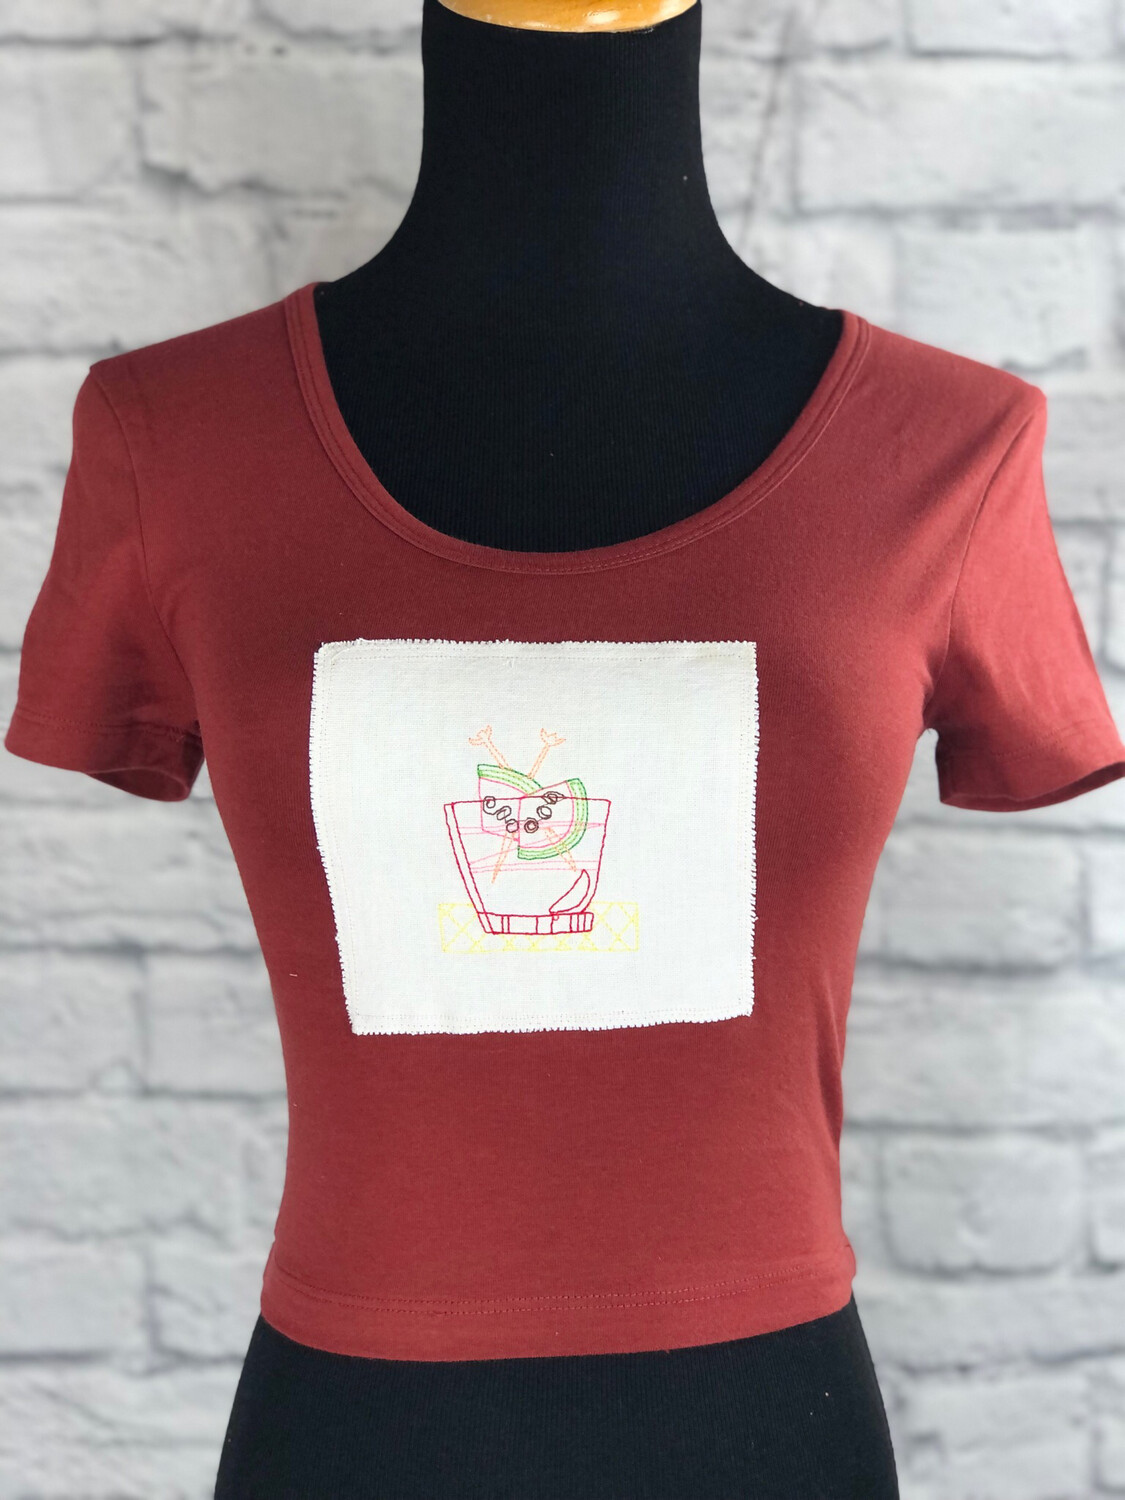 S Threads Upcycled Crop Top On The Rocks Size XS/S